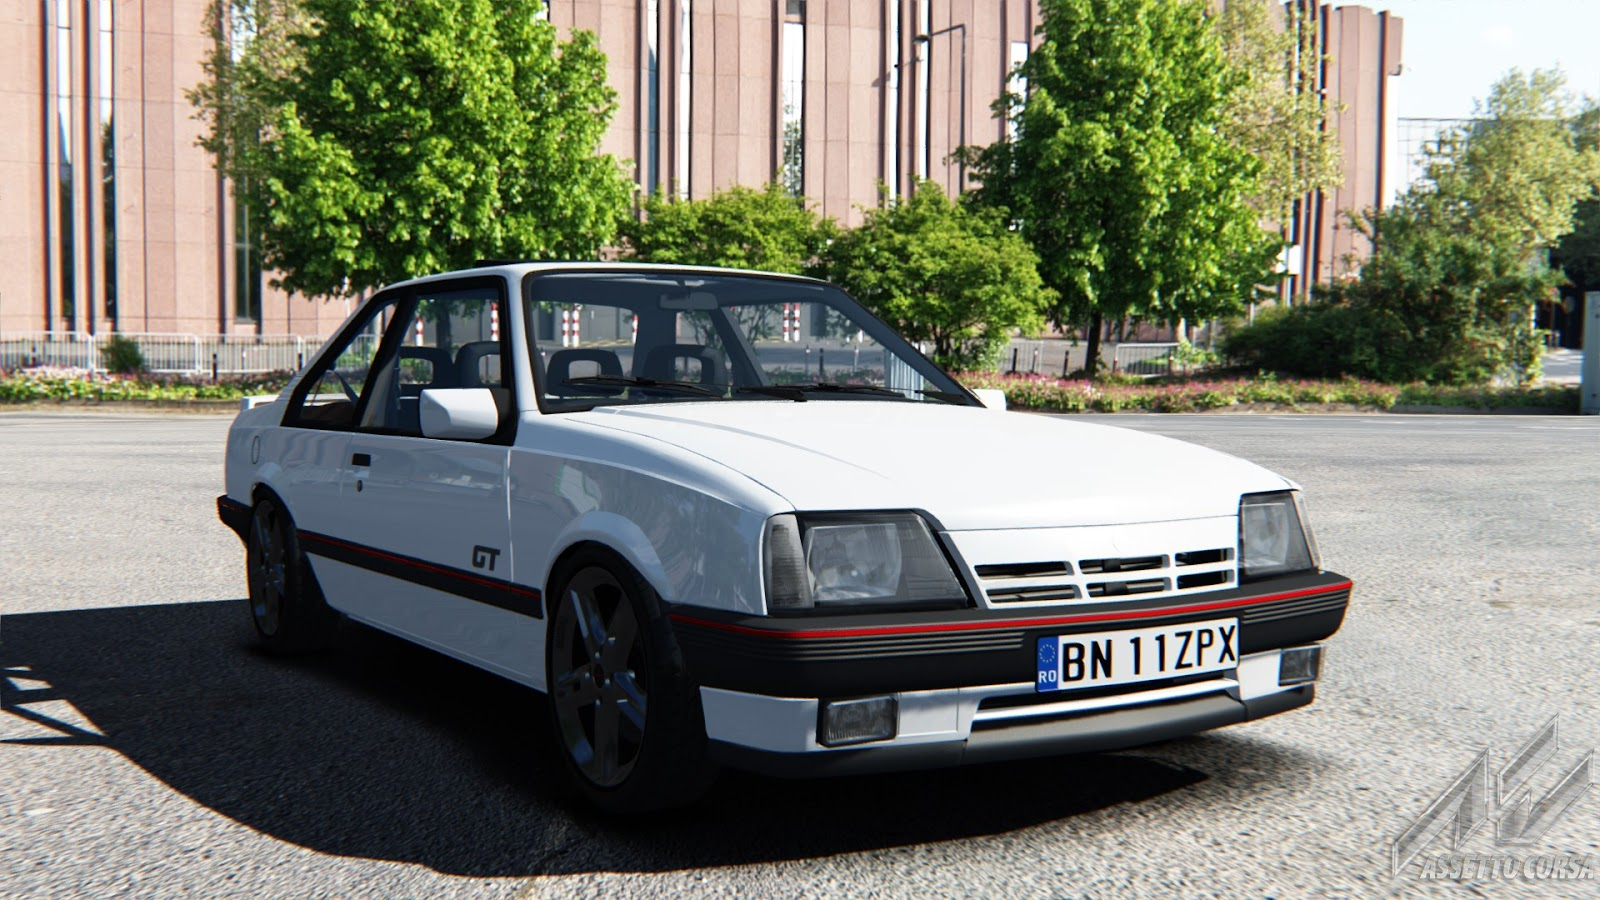 assetto corsa cars opel ascona c gt downloads mods mods downloads. Black Bedroom Furniture Sets. Home Design Ideas